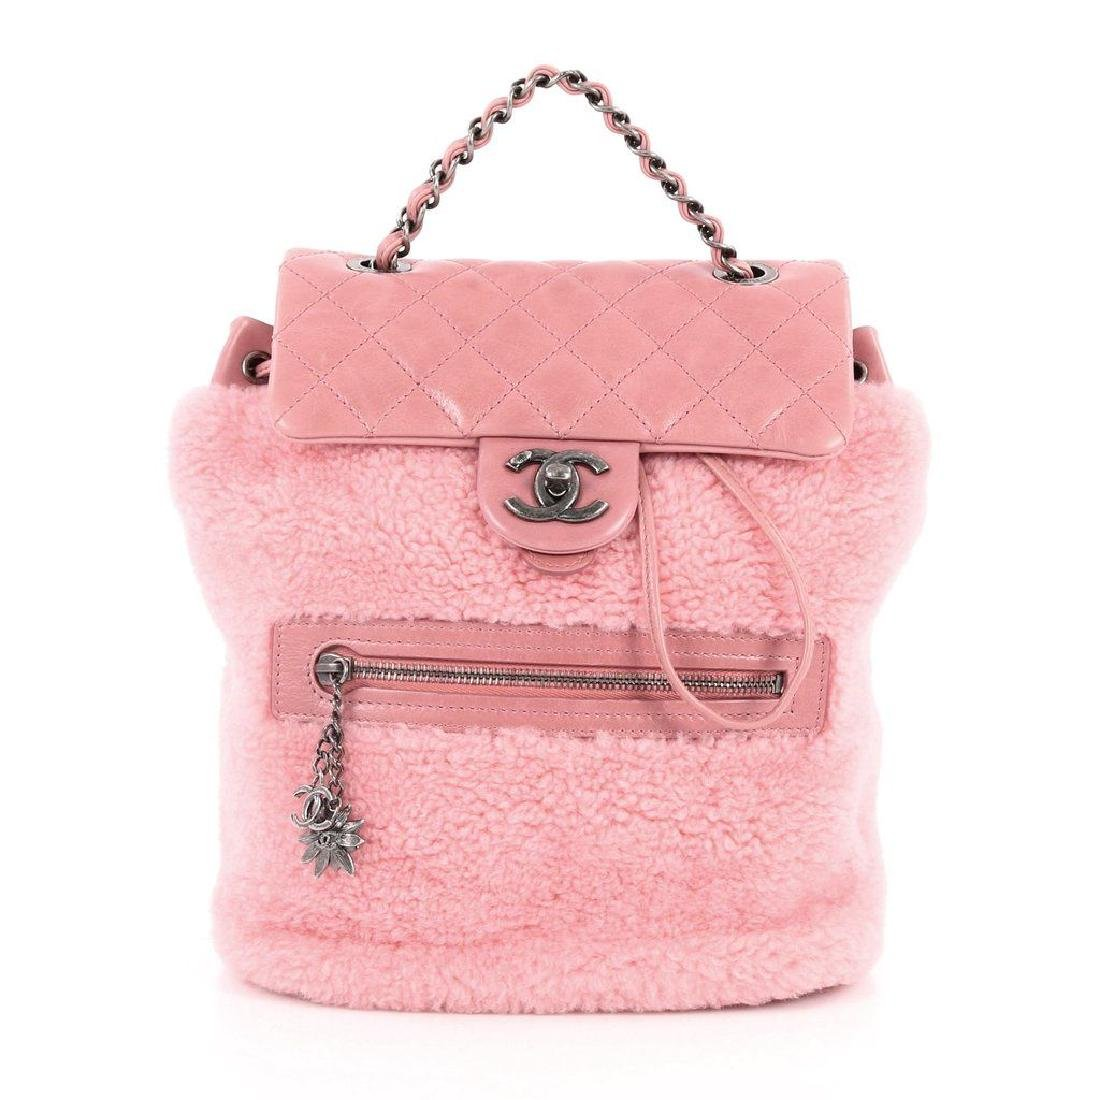 Authentic Chanel Backpack Pink Shearling Quilted - 3